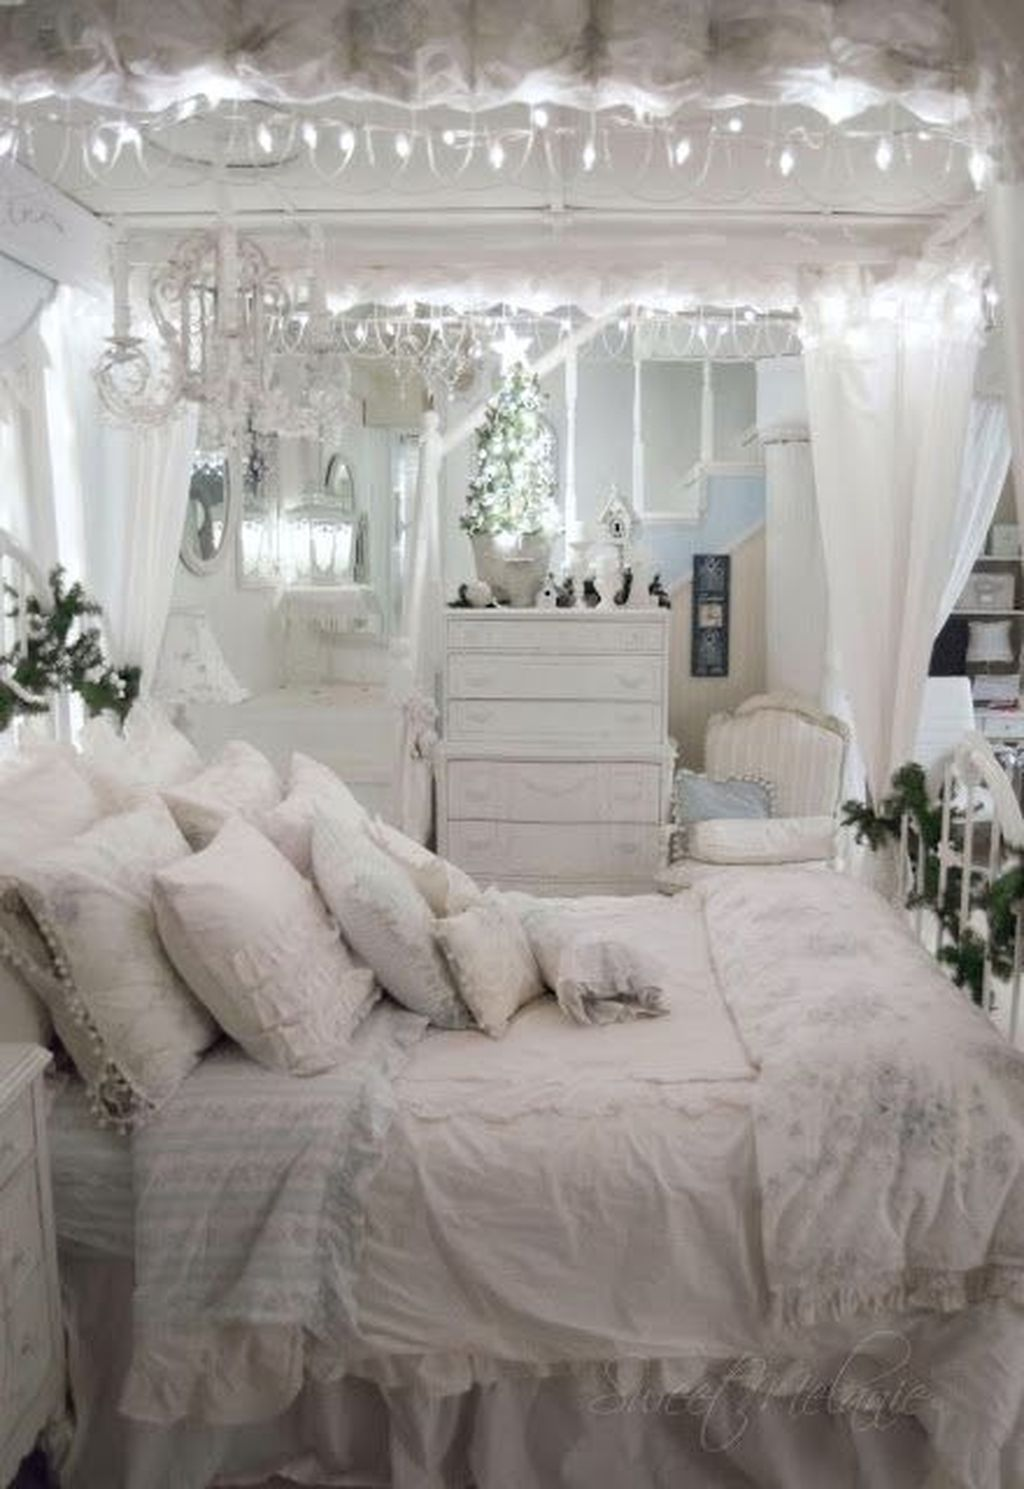 35 Cozy Shabby Chic Bedroom Ideas | Shabby Chic Decor | Pinterest ...